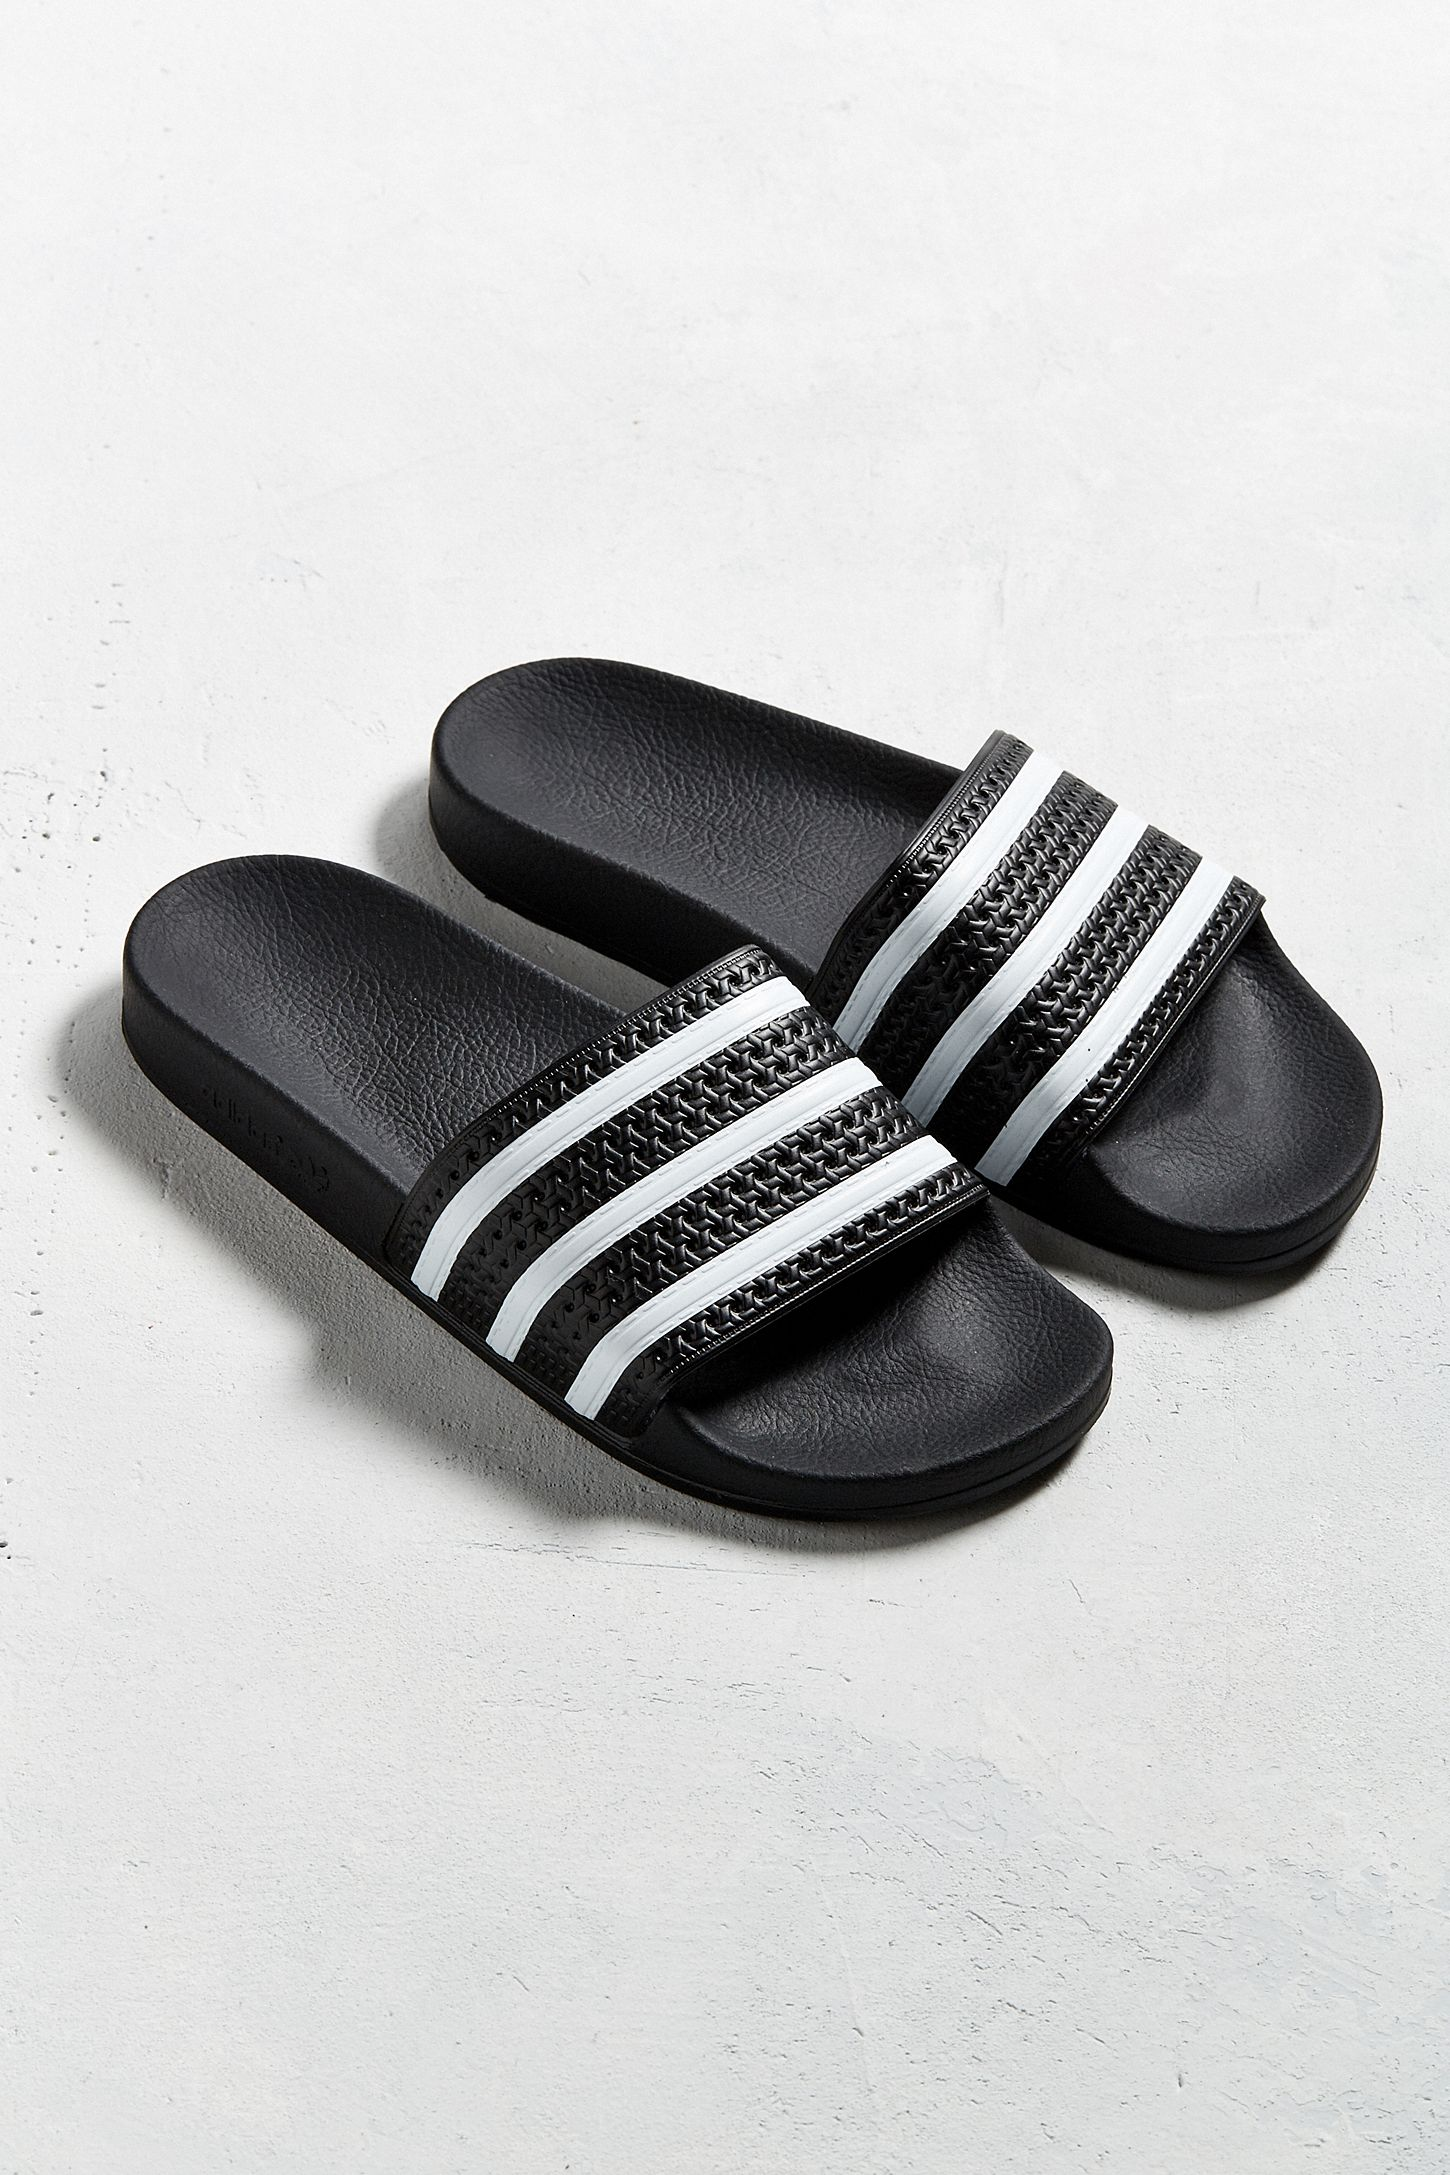 4af8a6236 adidas Originals Adilette Pool Slide Sandal